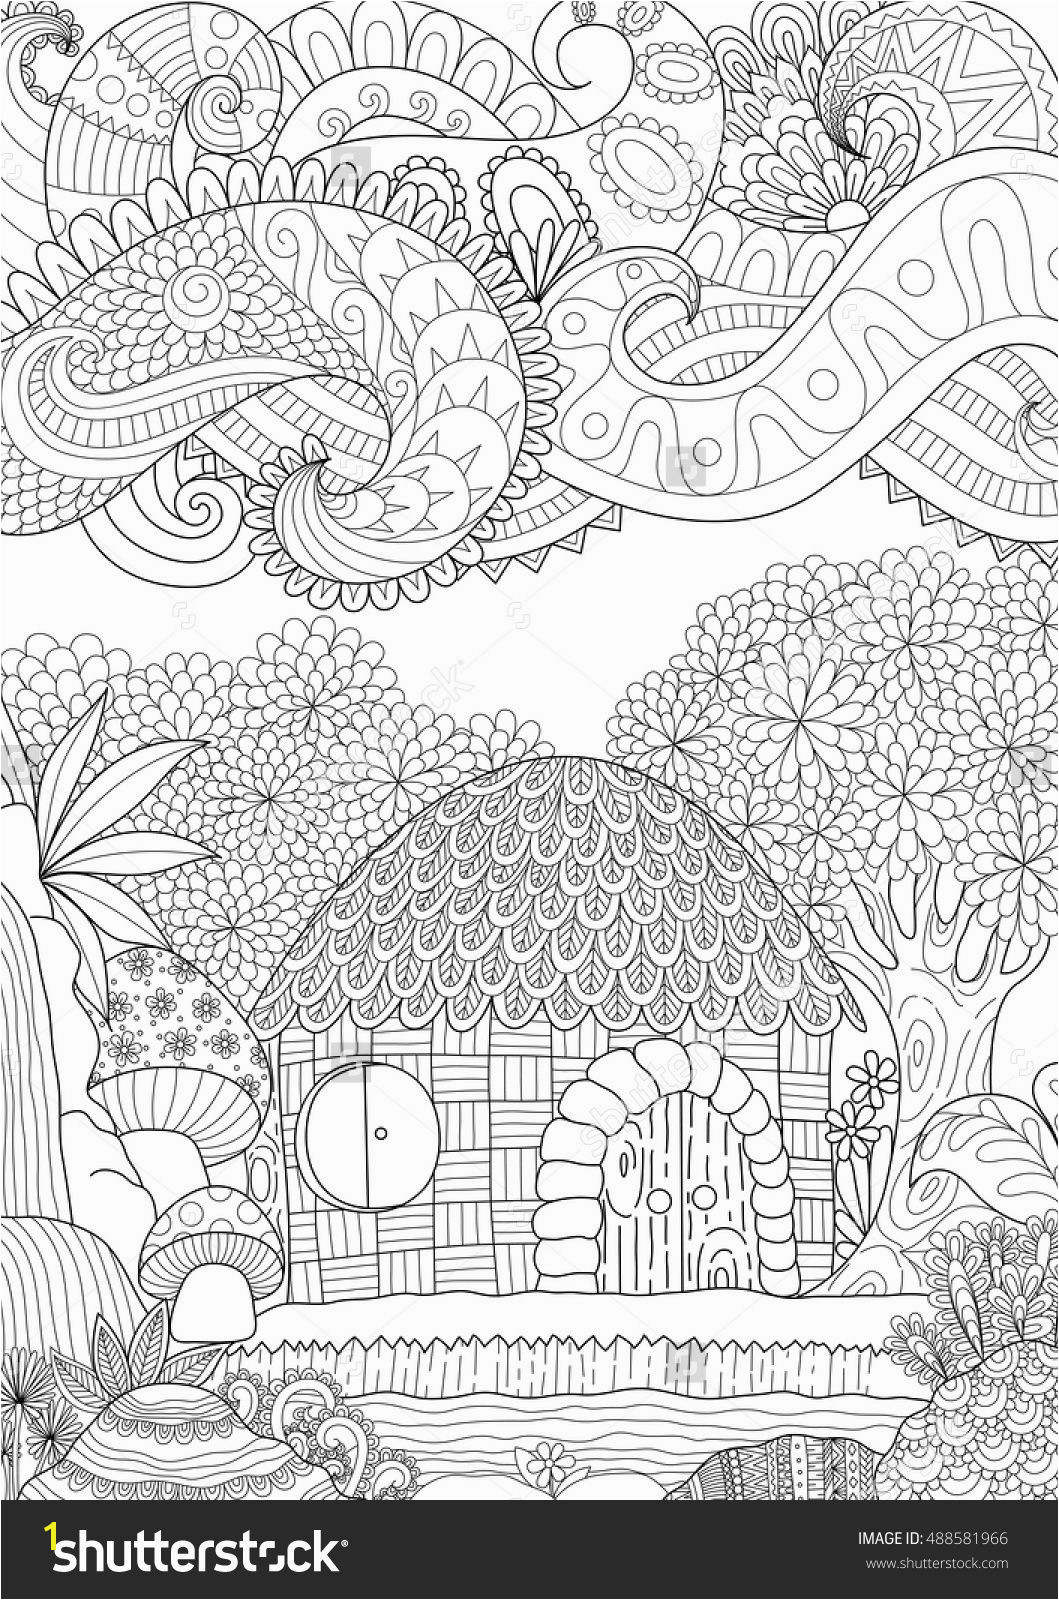 Zendoodle design of small hut in the forest with abstract clouds for adult coloring